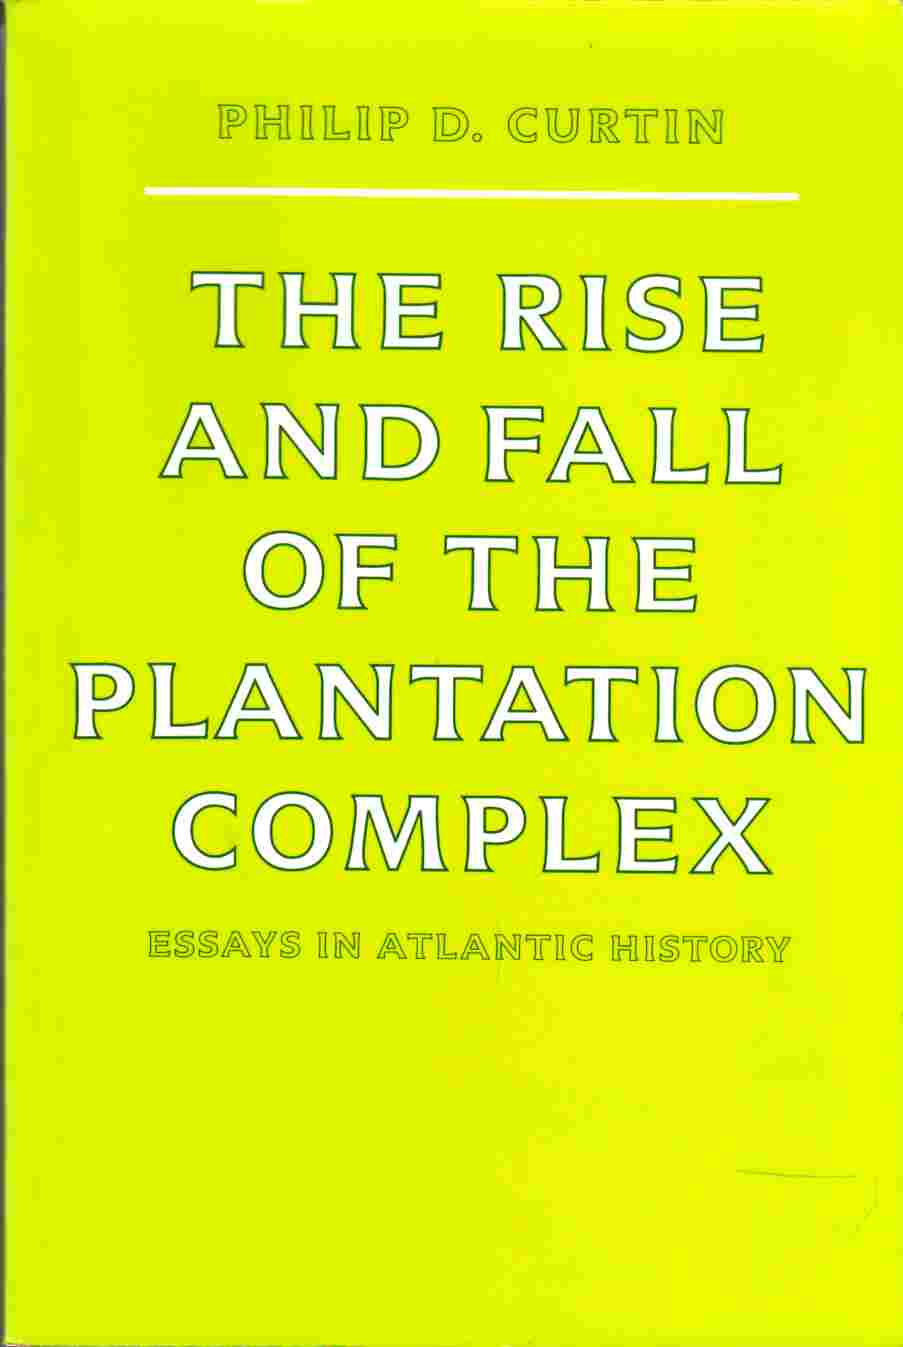 Image for The Rise and Fall of the Plantation Complex Essays in Atlantic History